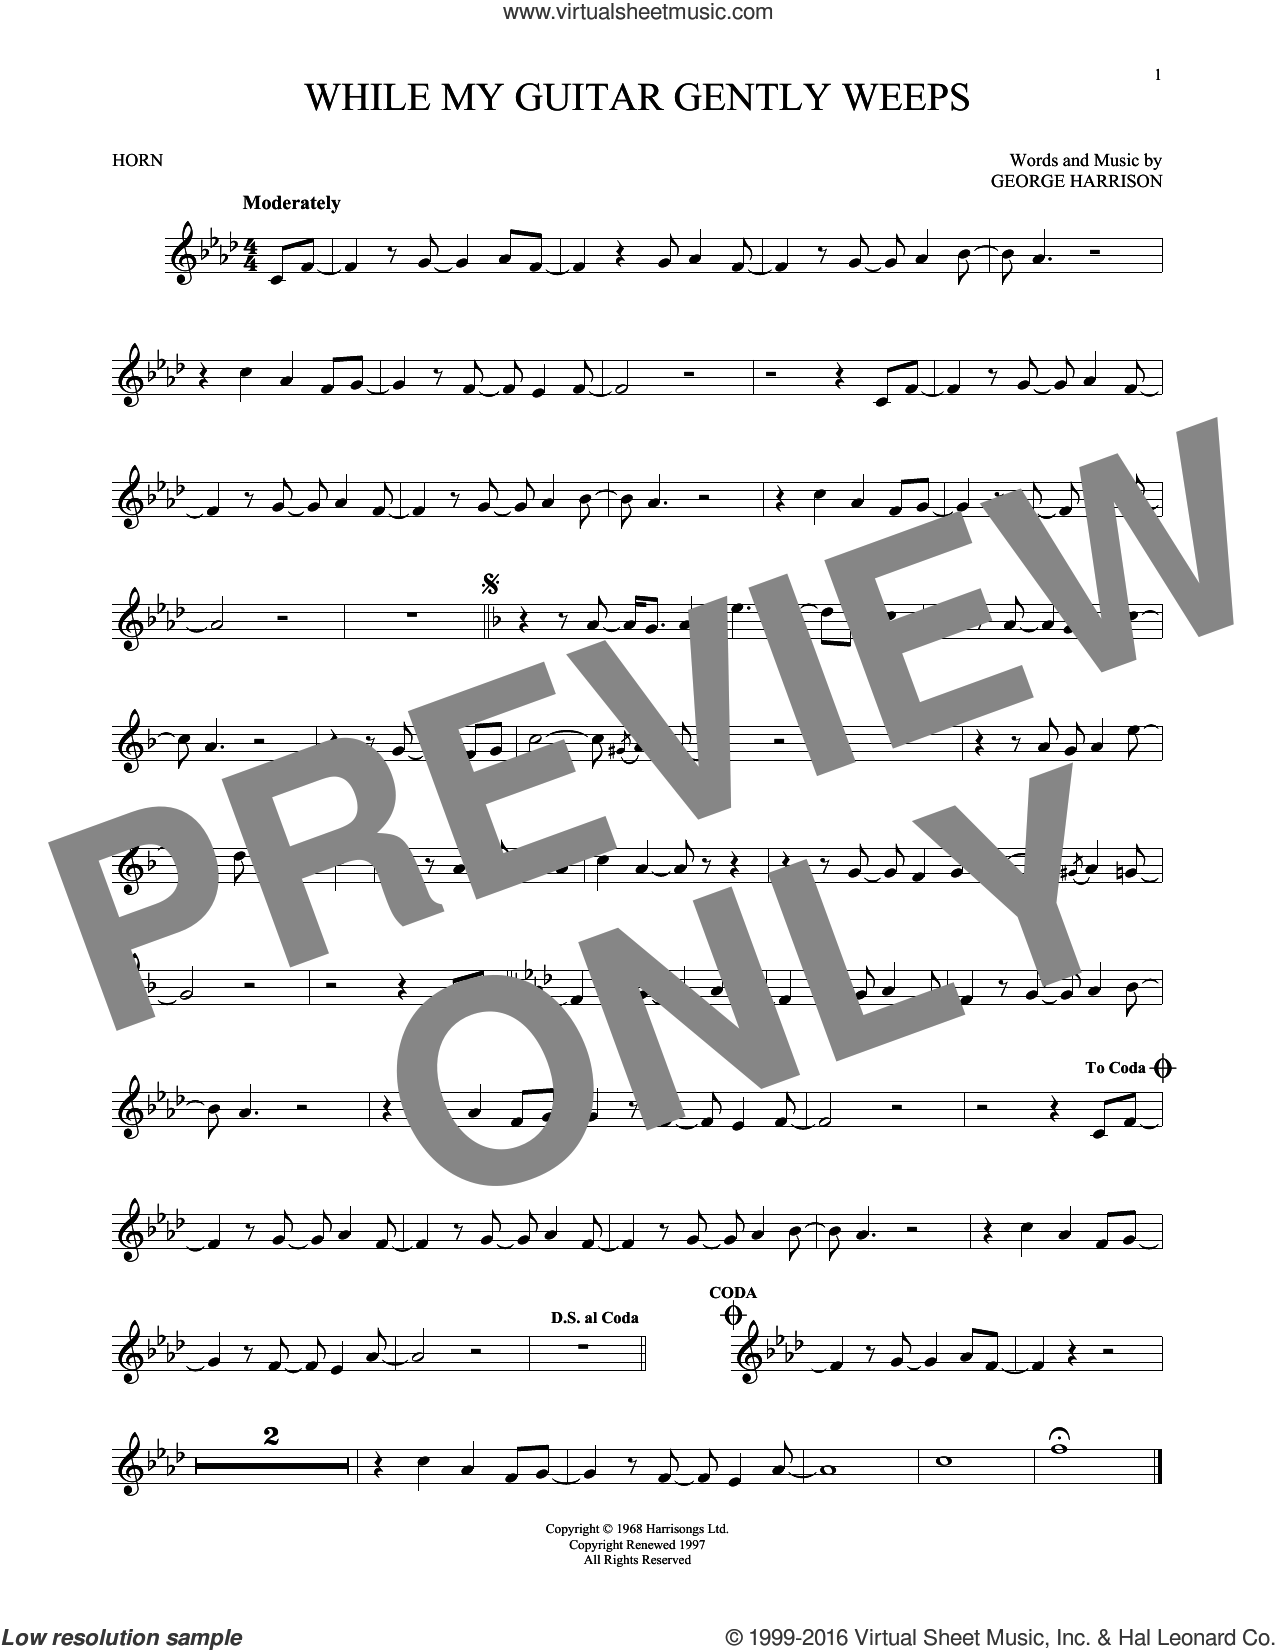 While My Guitar Gently Weeps sheet music for horn solo by The Beatles. Score Image Preview.